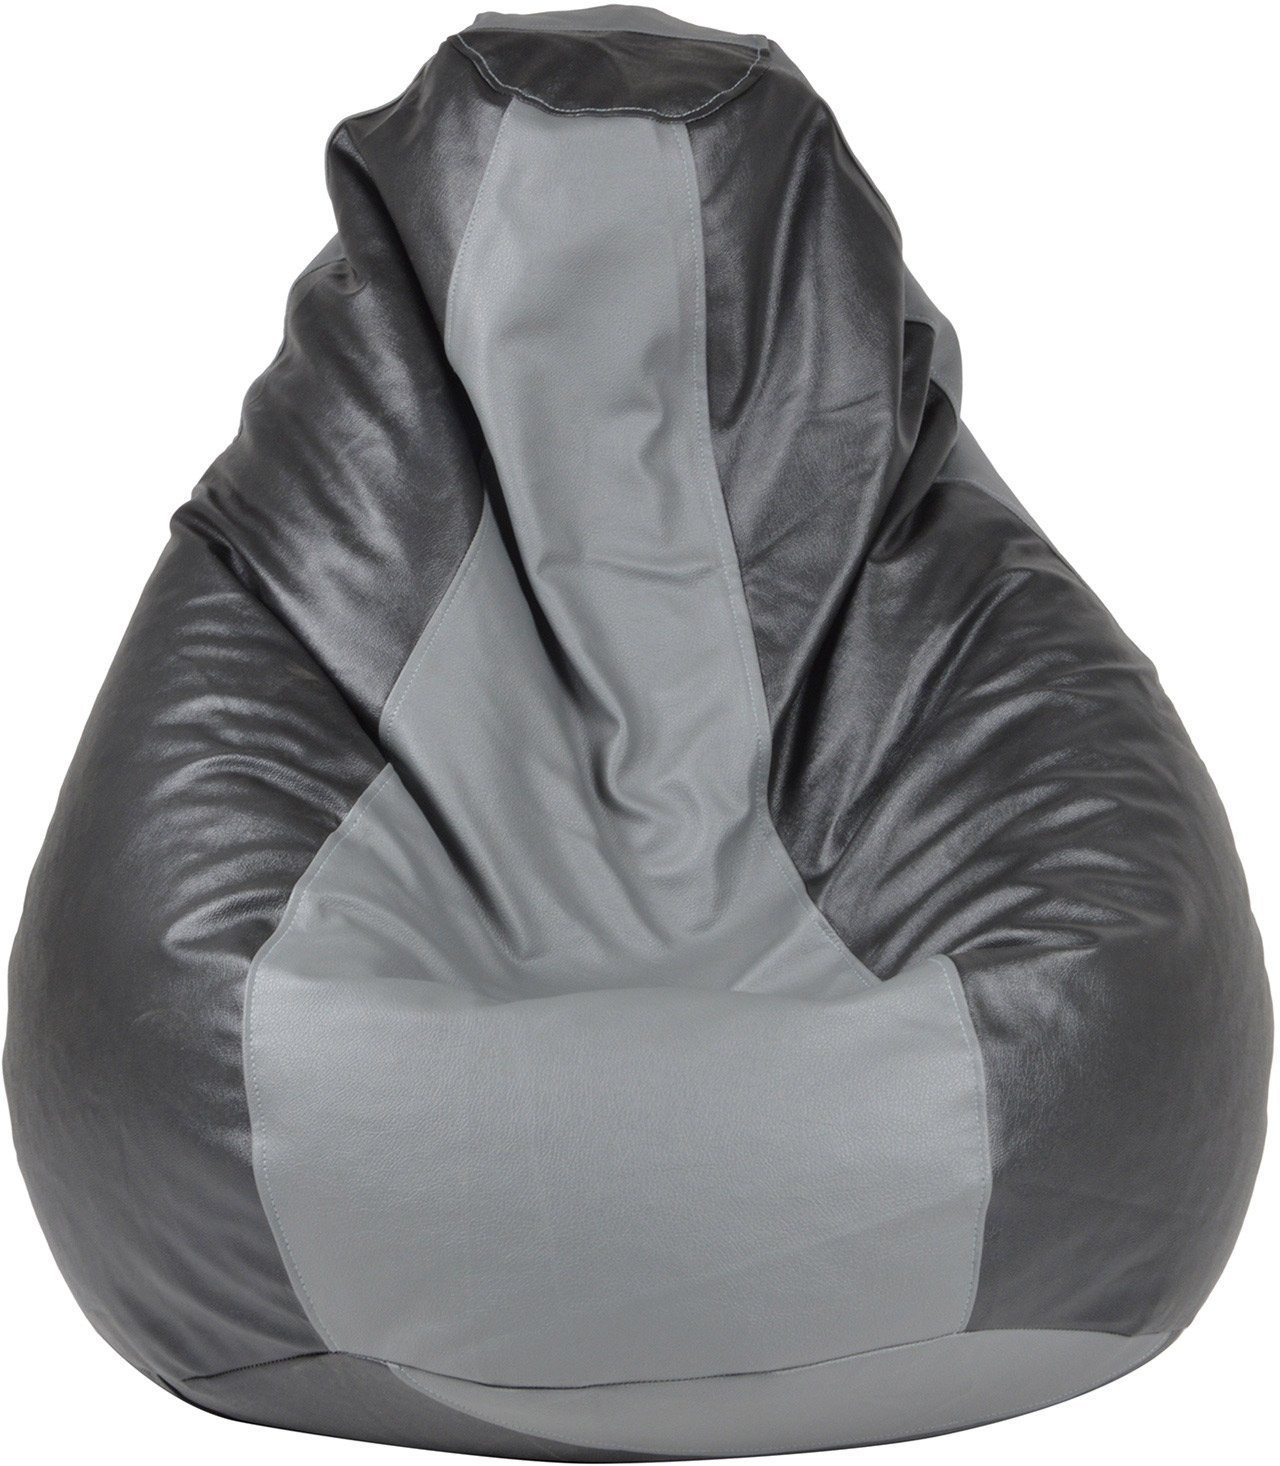 View Galaxy Decorz XL Bean Bag Cover(Black, Grey) Furniture (Galaxy Decorz)